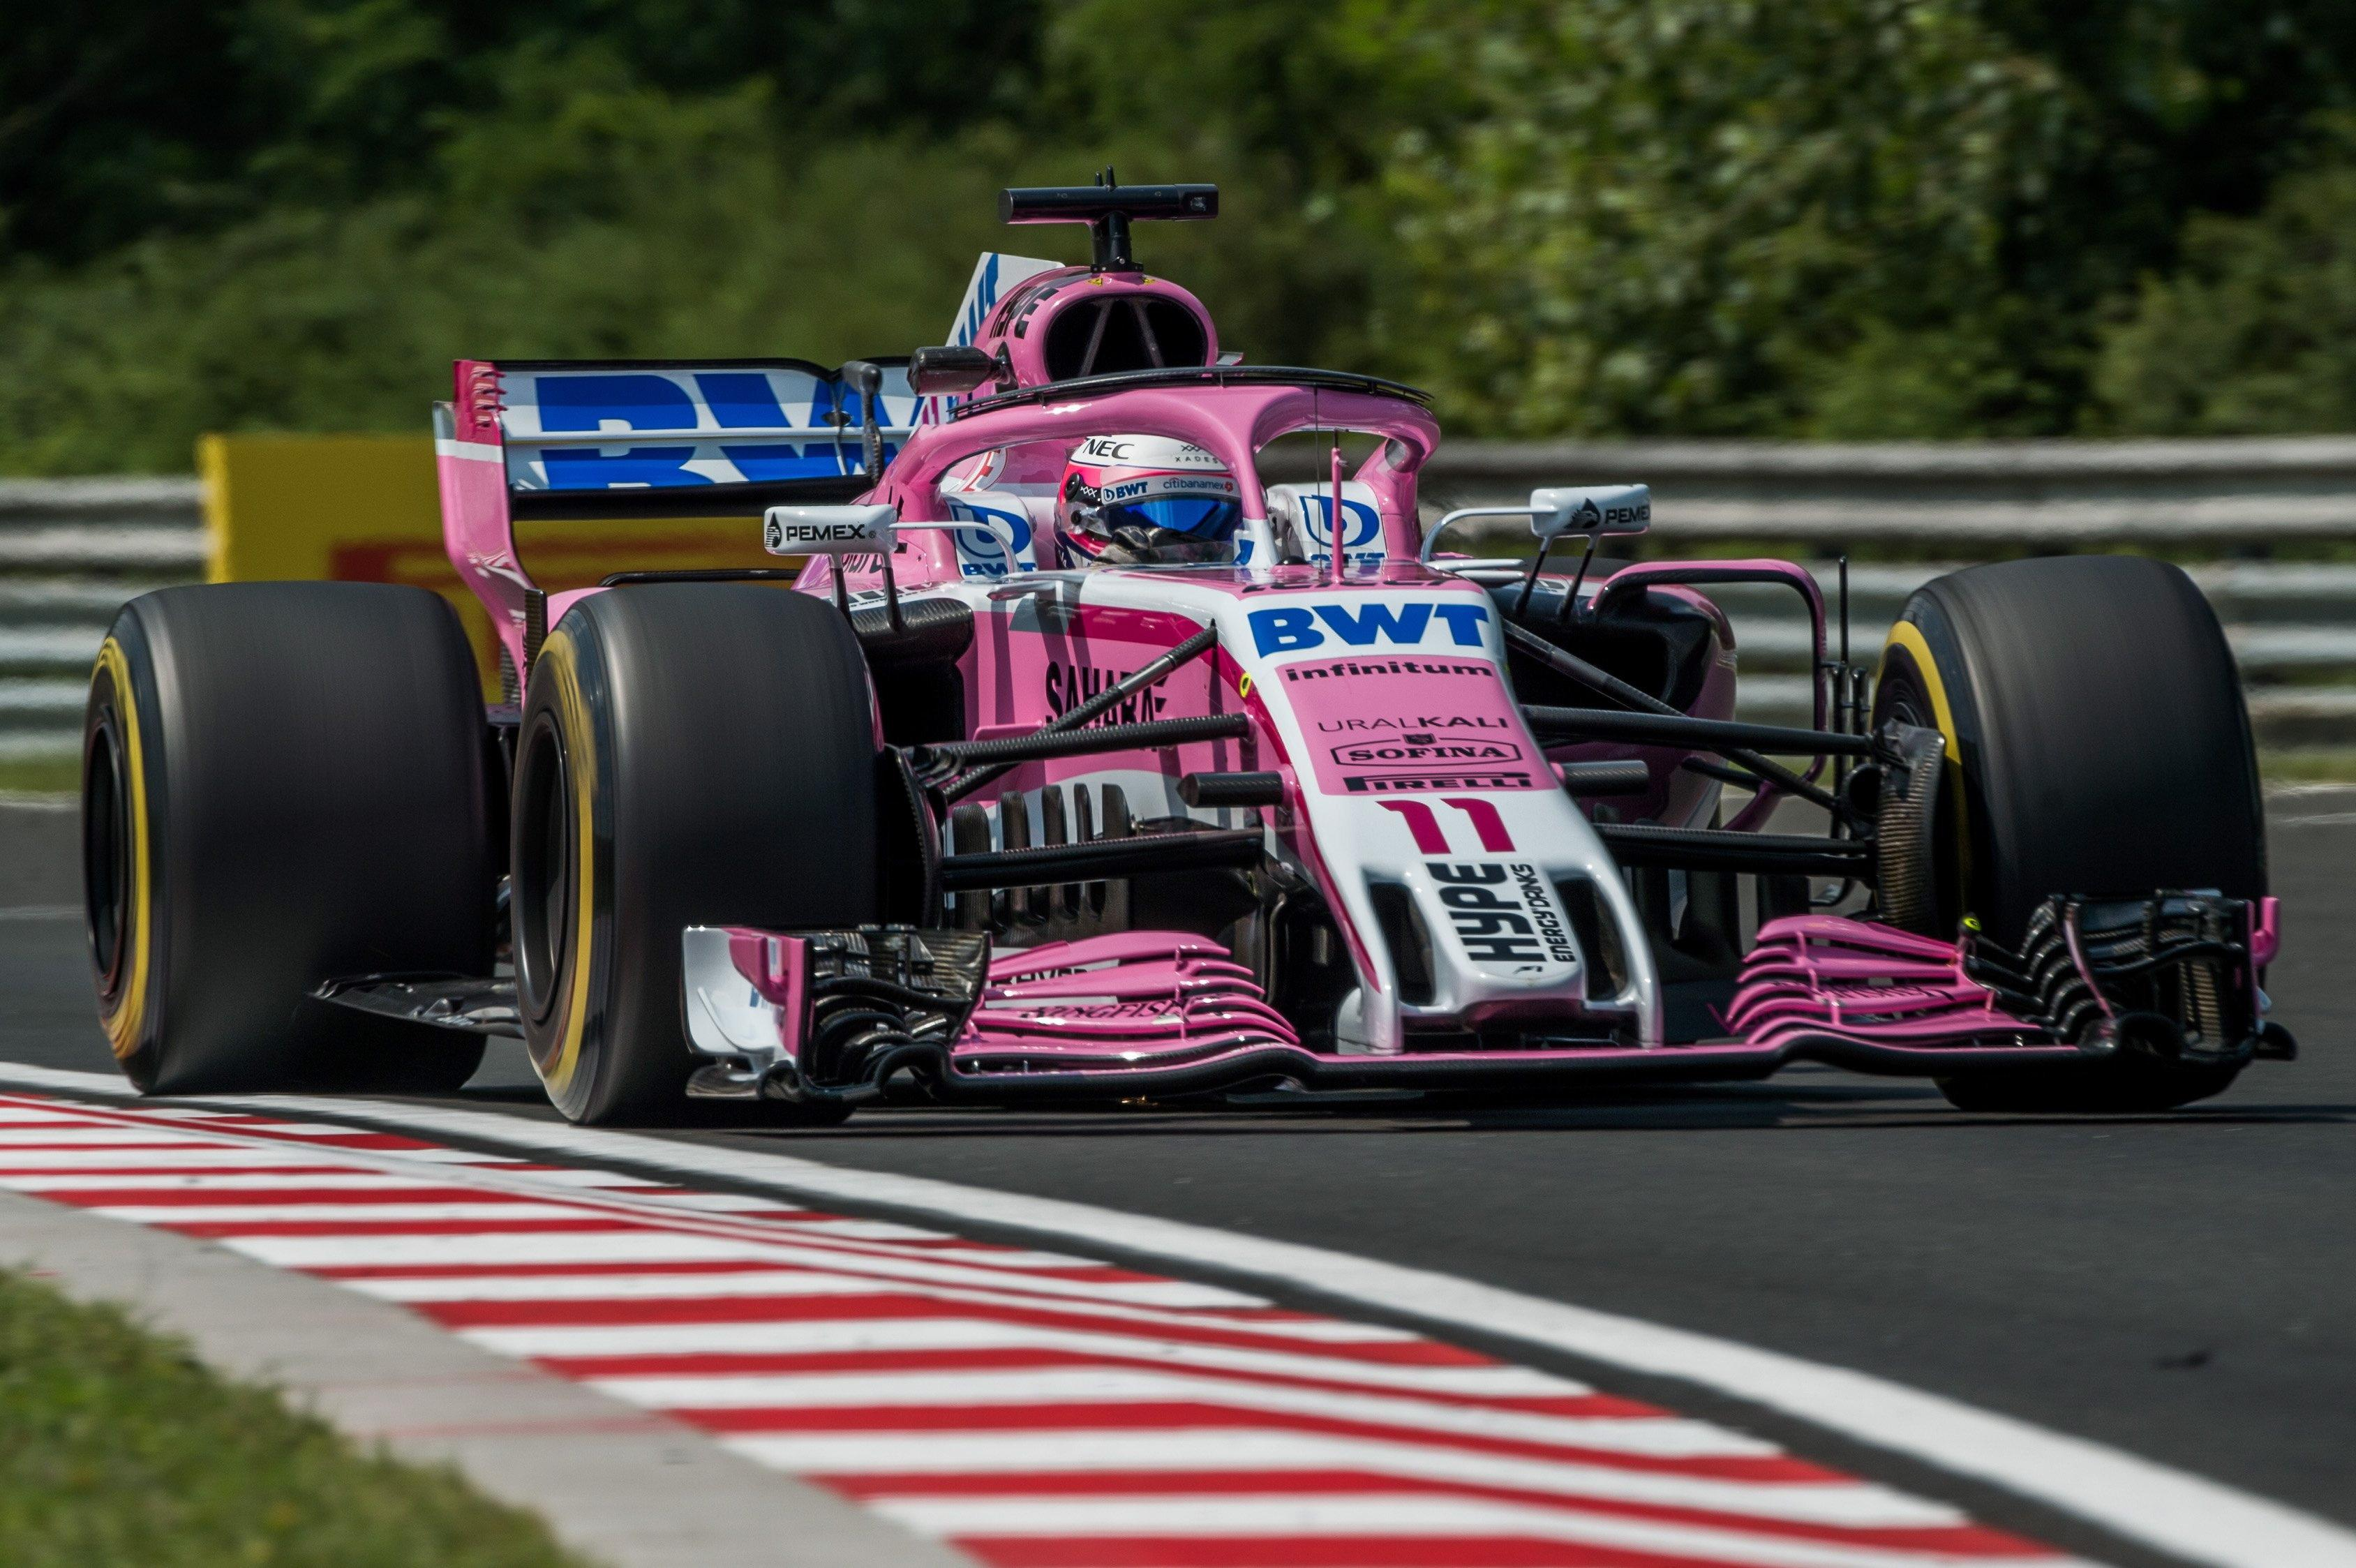 Force India's Sergio Perez in action at the Hungarian Grand Prix